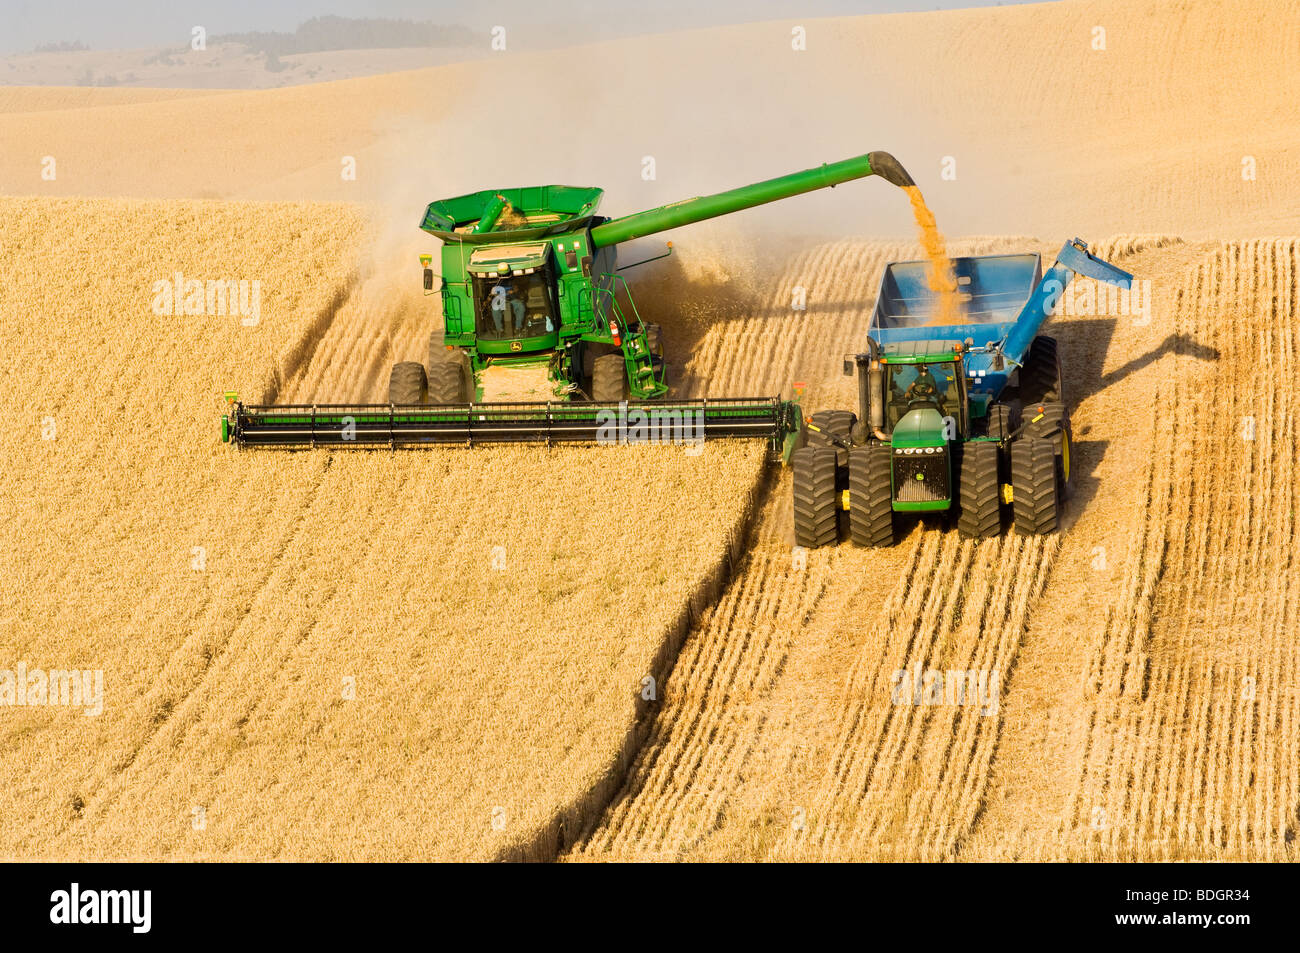 "A John Deere combine harvests Soft White wheat on rolling hillside terrain and unloads into a grain wagon ""on-the - Stock Image"